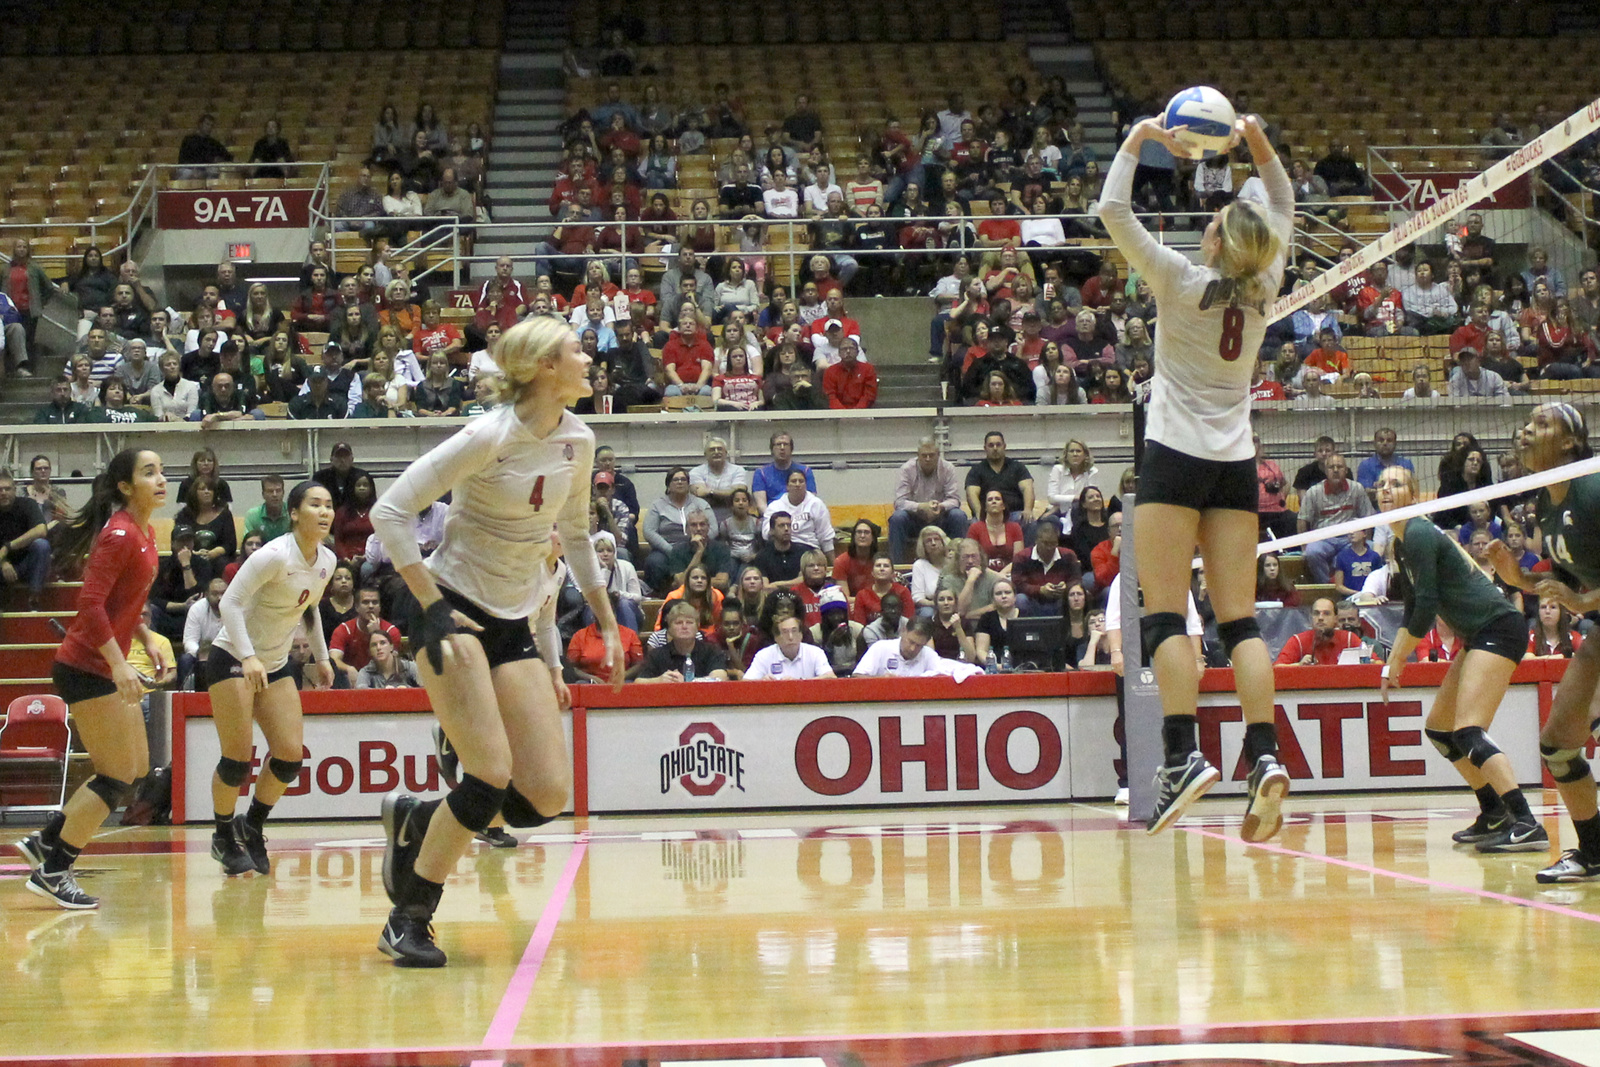 Ohio State Women S Volleyball Looks To Avenge Road Loss To No 6 Penn State The Lantern